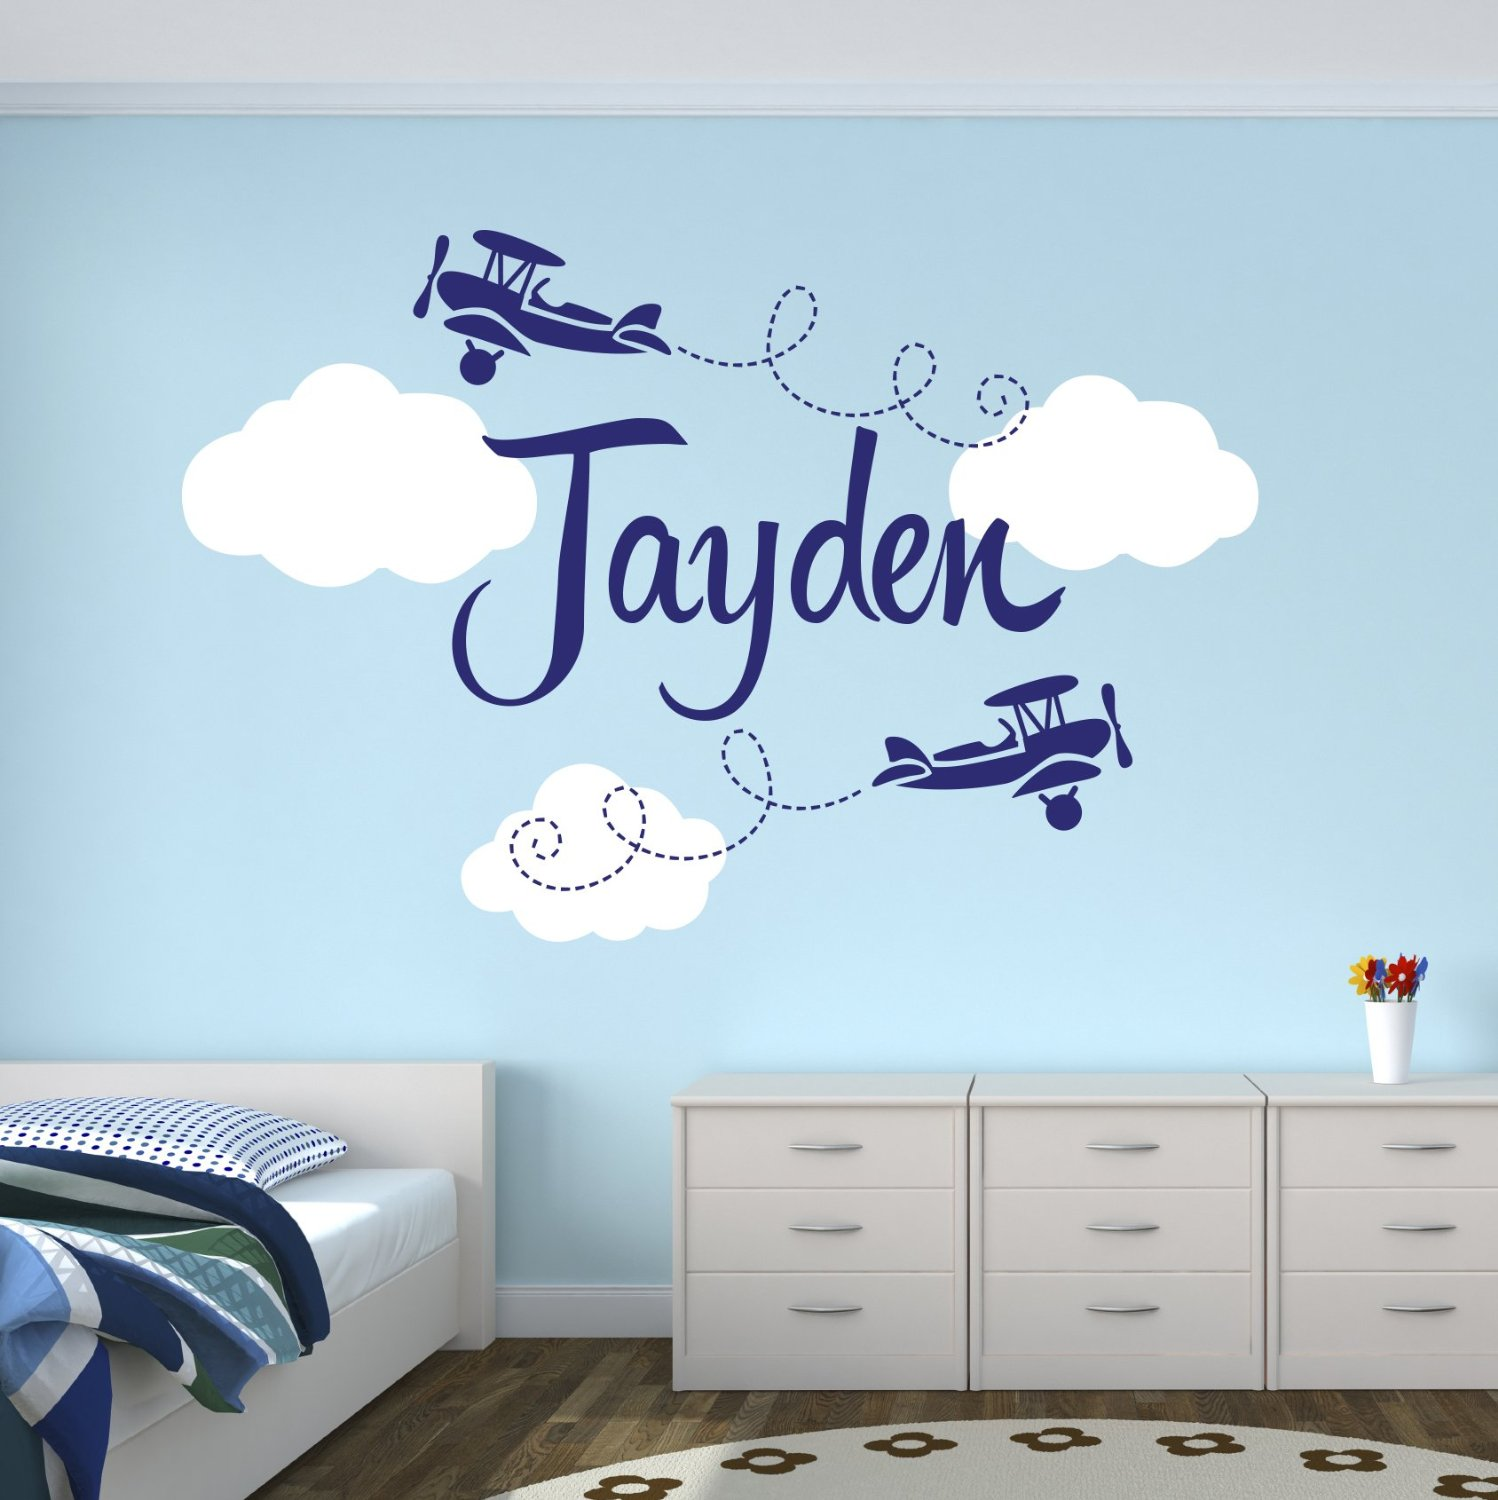 Custom Vinyl Wall Decals For Childrens Room Custom Vinyl Decals - Custom vinyl wall decals nursery